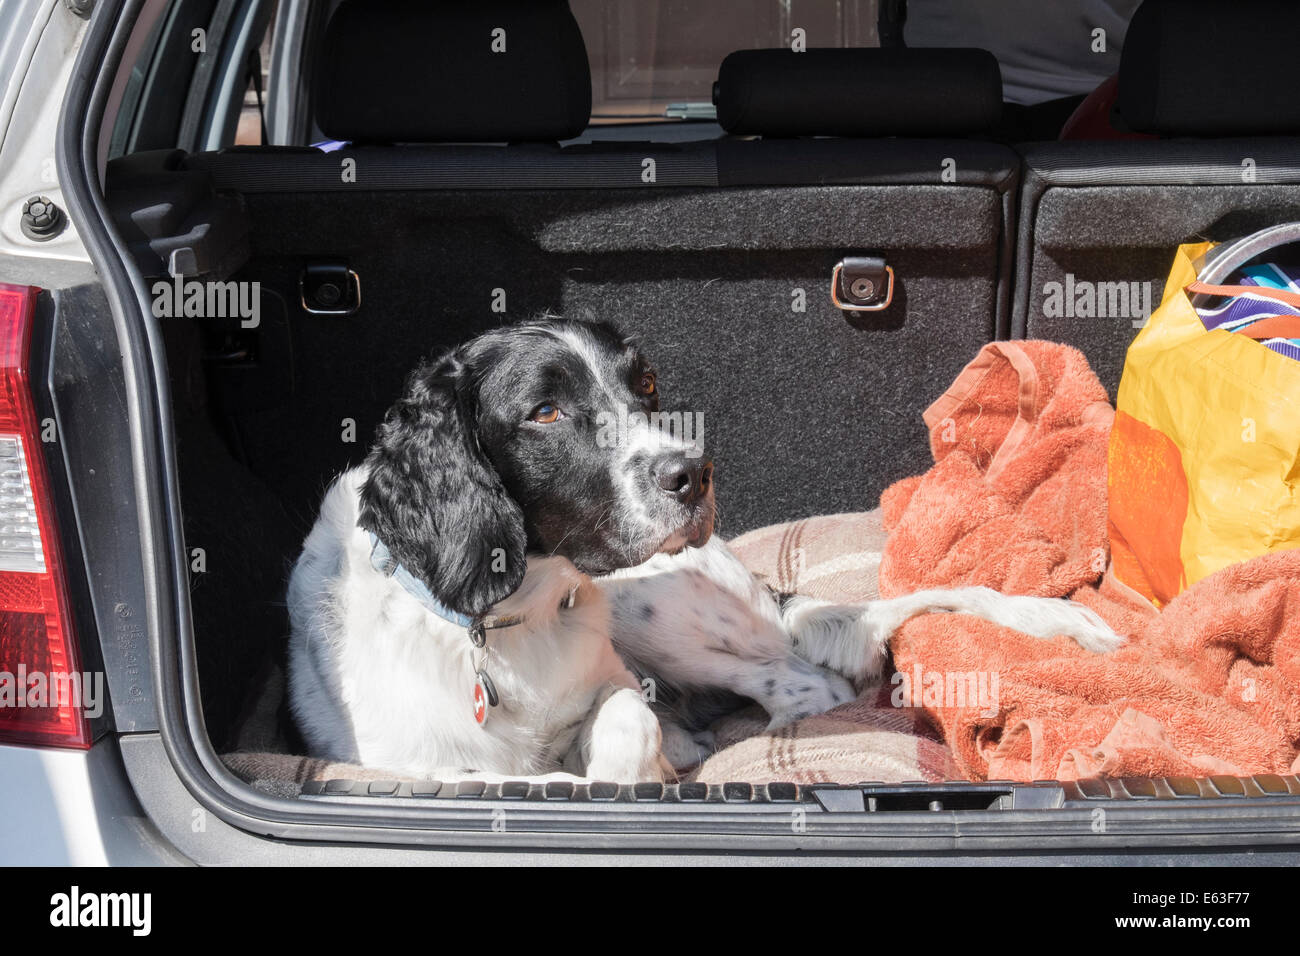 62fe1c029818 A black and white adult English Springer Spaniel dog patiently waiting in a  hatchback car boot